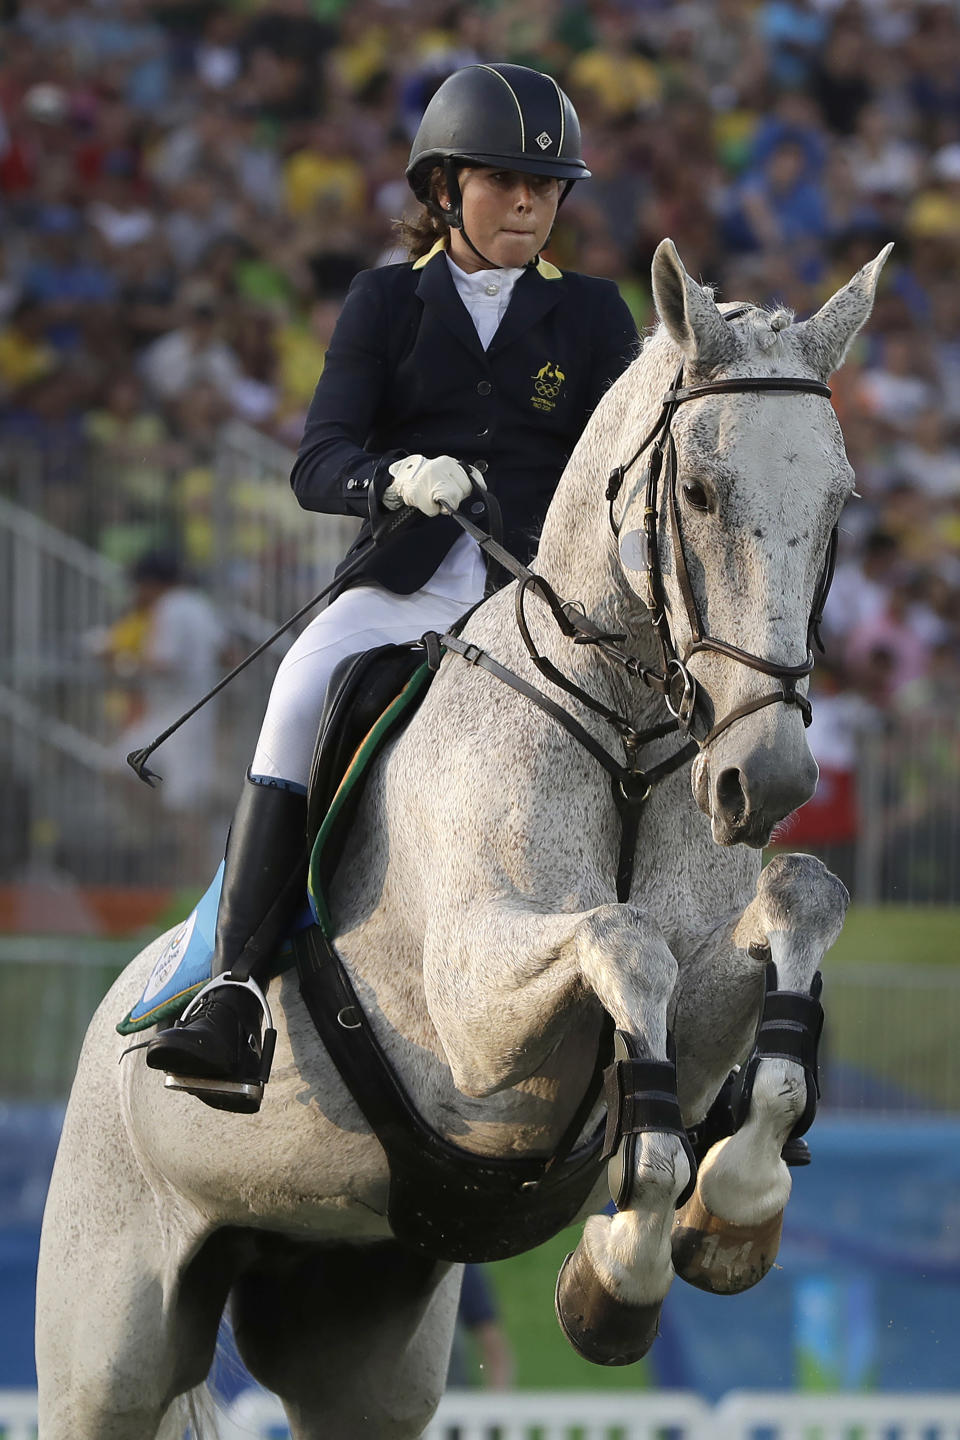 "FILE - In this Aug. 19, 2016, file photo, gold medal winner Chloe Esposito of Australia competes in the equestrian portion of the women's modern pentathlon at the Summer Olympics in Rio de Janeiro, Brazil. Esposito announced in late January that a ""wonderful, unexpected surprise"" had occurred and that the Australian wouldn't be able to defend her modern pentathlon gold medal at the Tokyo Olympics. She was pregnant with her first child. Two months later Esposito and thousands of other Olympic athletes learned that the Tokyo Games would be put off by a year until July 2021 because of the coronavirus pandemic. While for some it meant more time to recover from injuries or extra time to prepare, Esposito realized it might give her a second chance to be in Tokyo next year. (AP Photo/Kirsty Wigglesworth, File)"